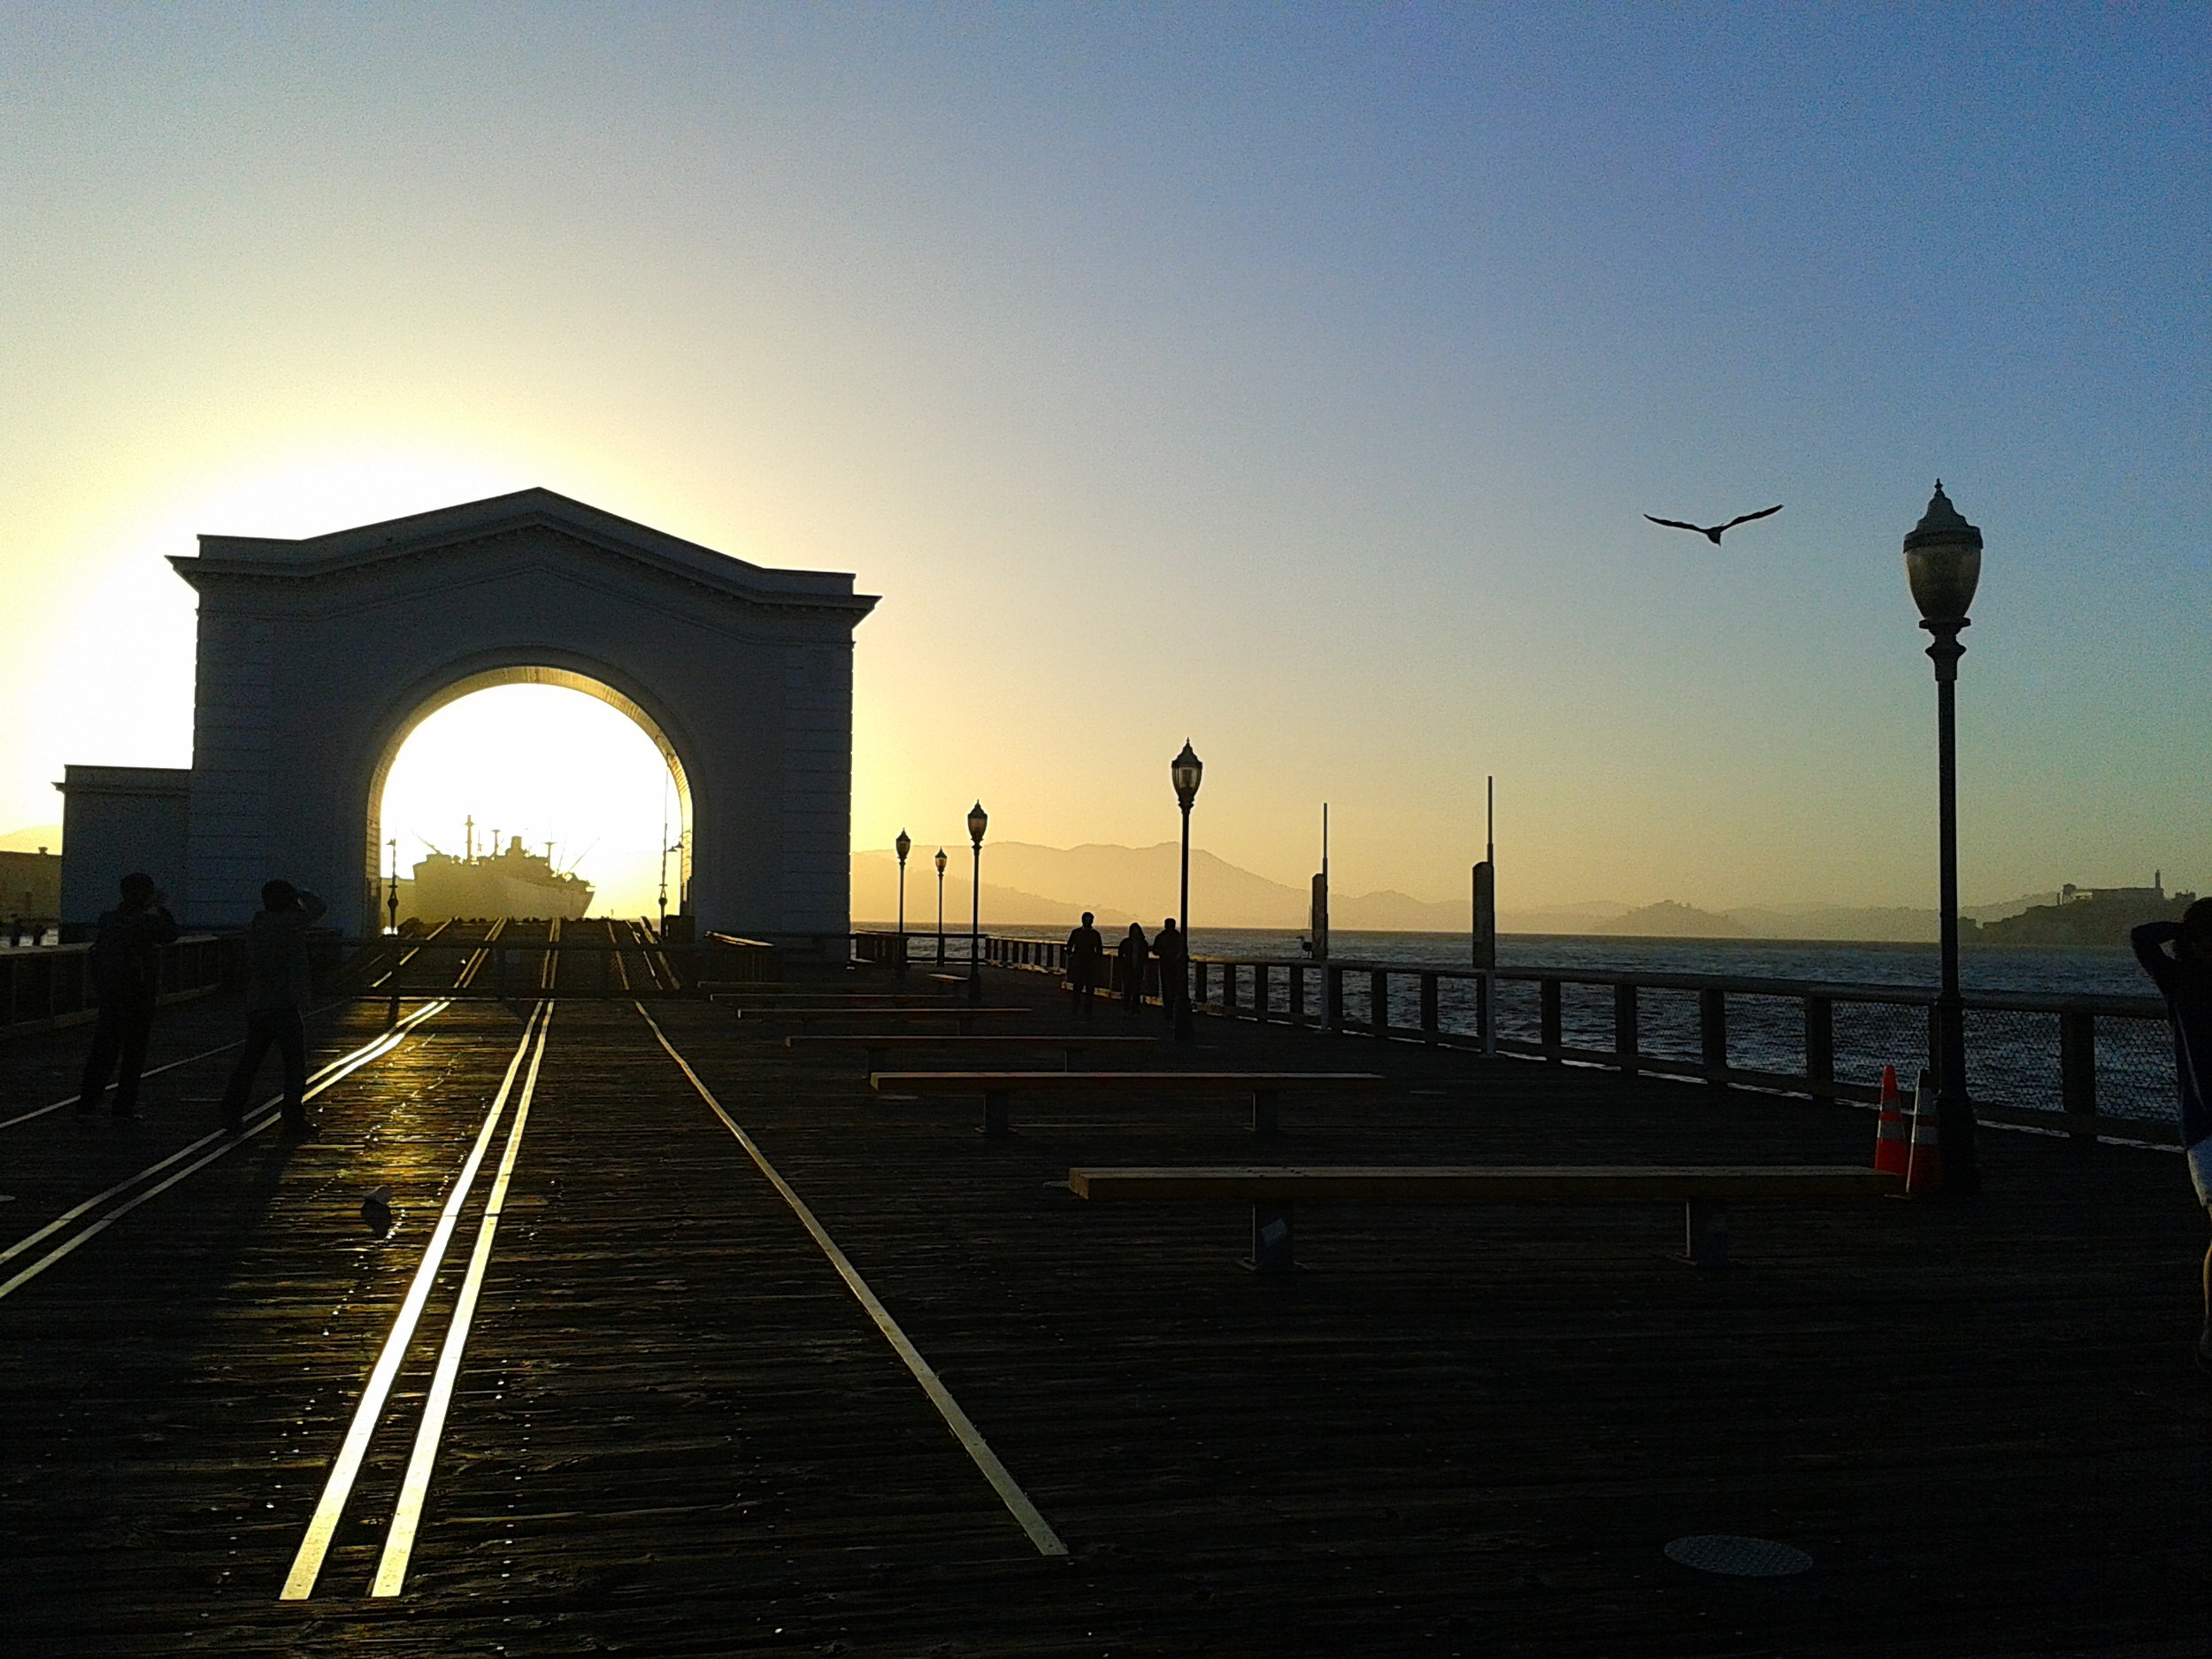 Split-second-and-the-sun-is-gone-San-Francisco-USA.jpg